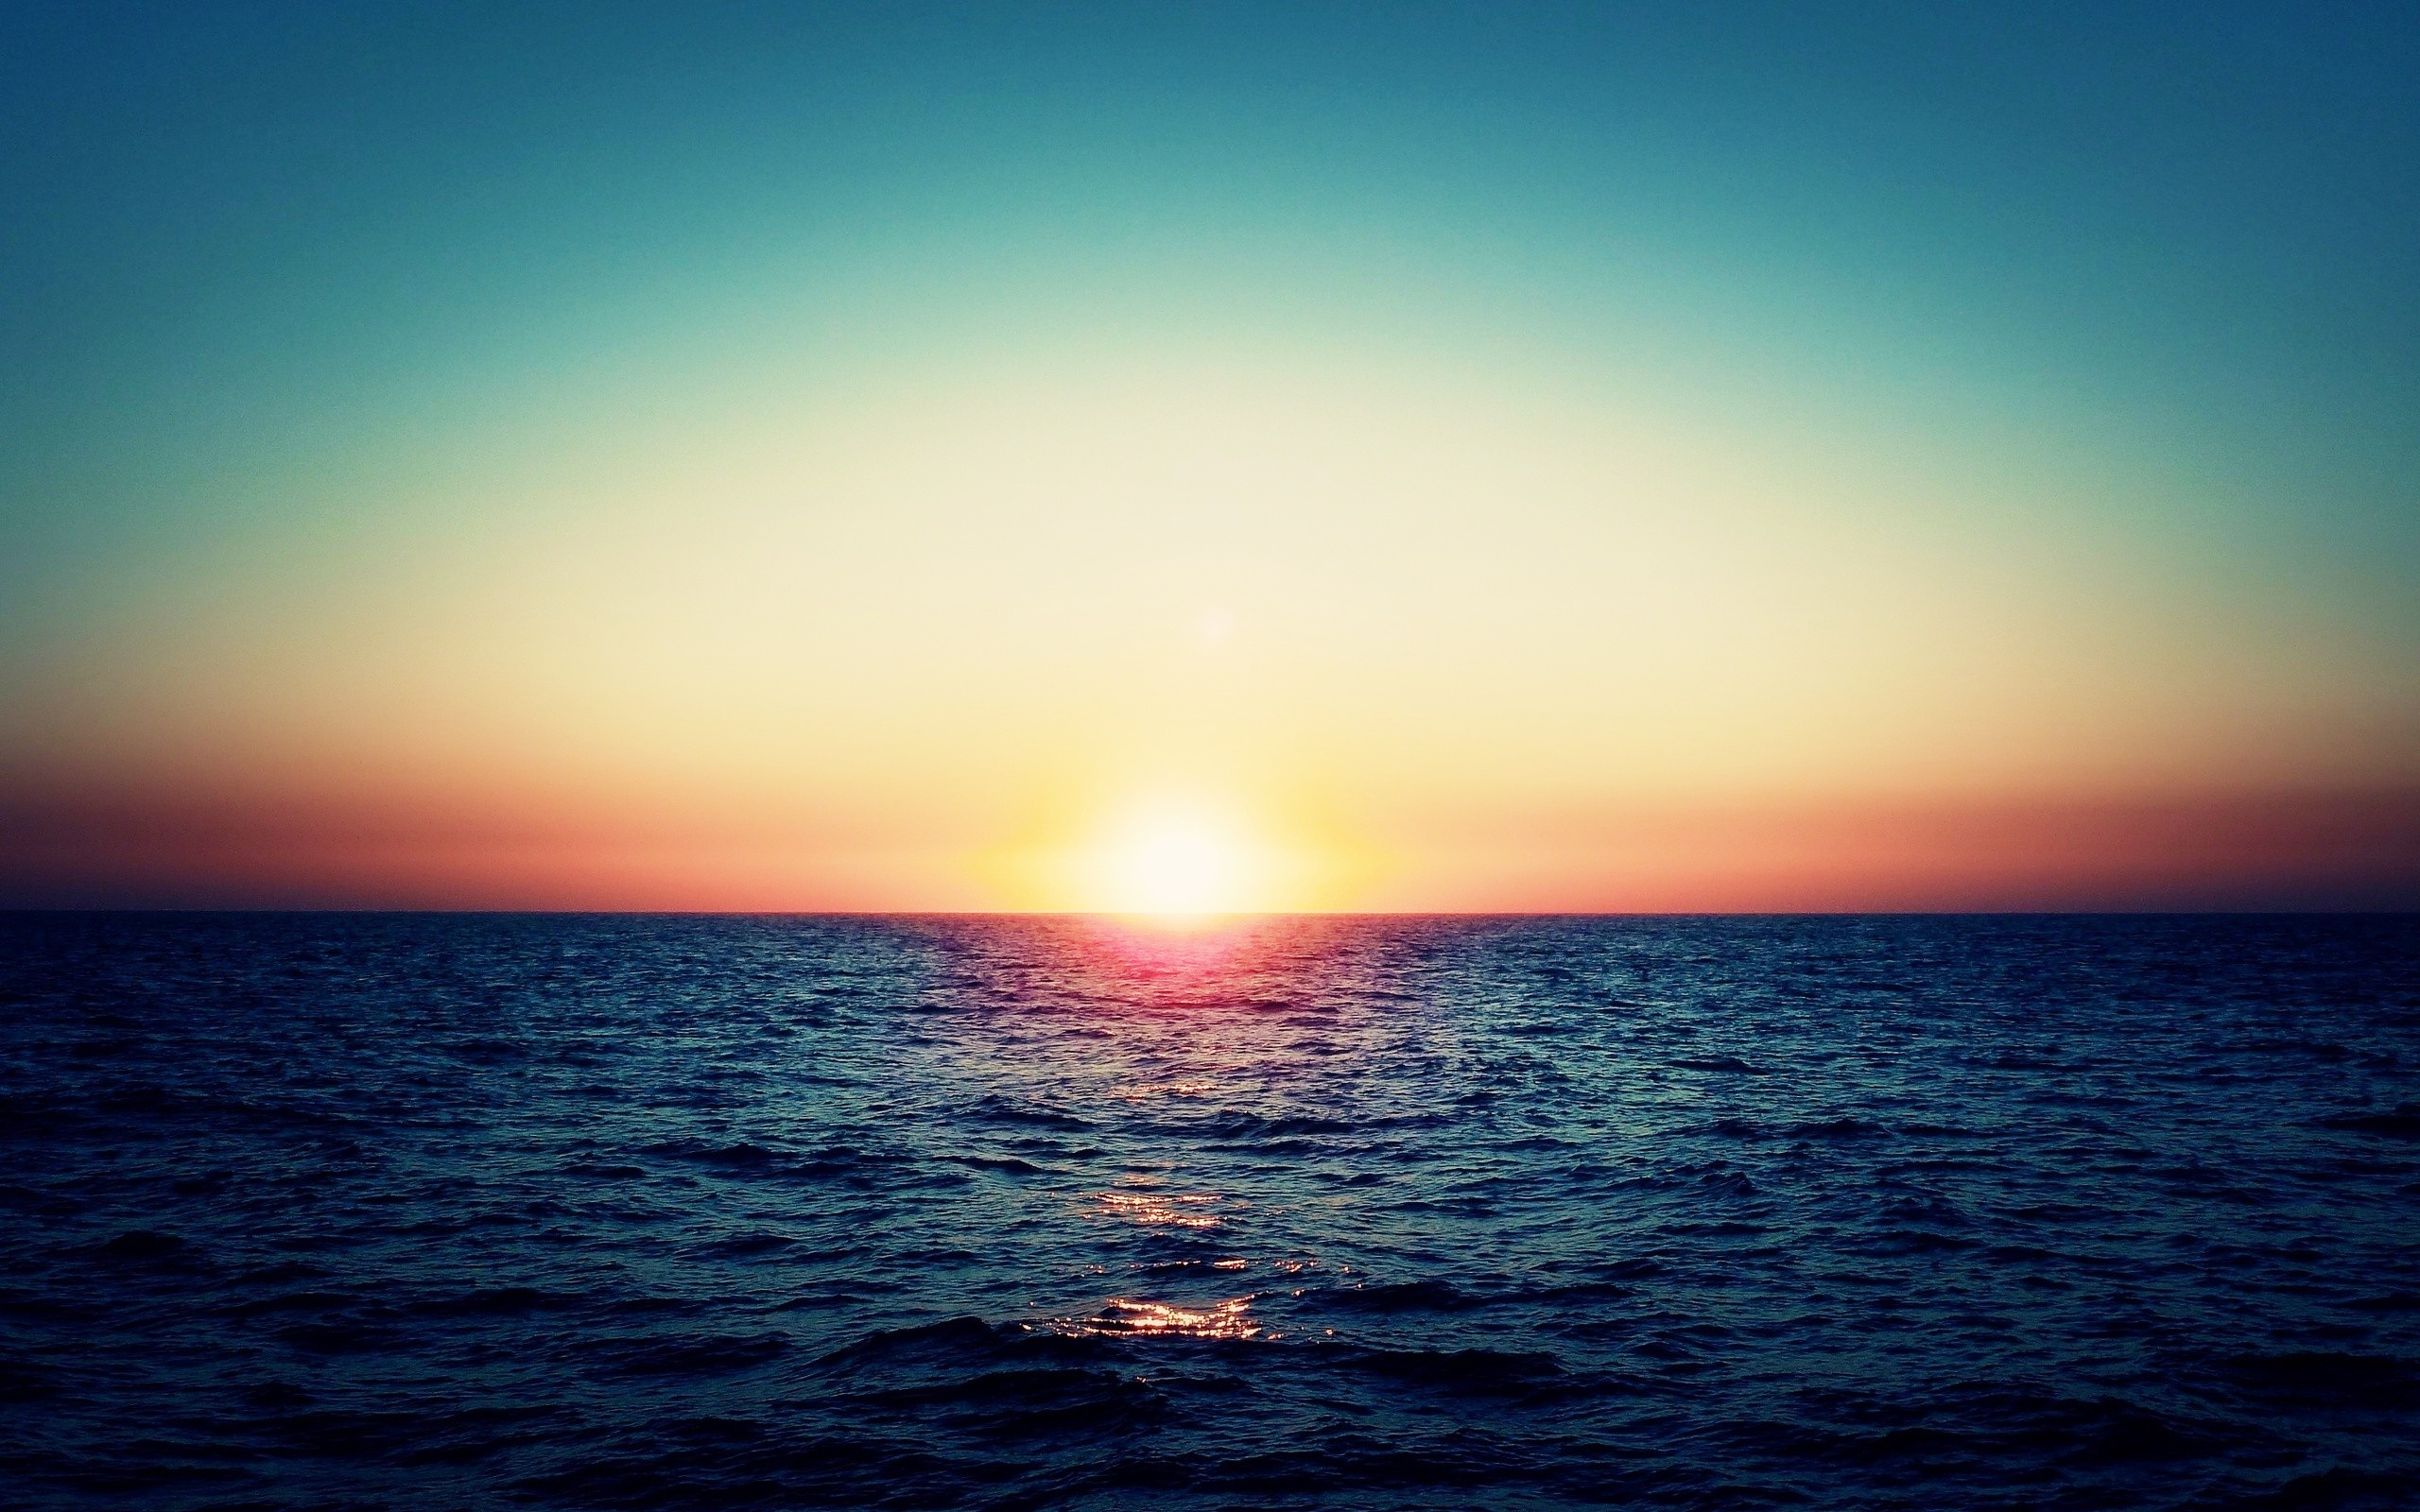 Ocean sunset horizon wallpaper | 2560x1600 | #31206